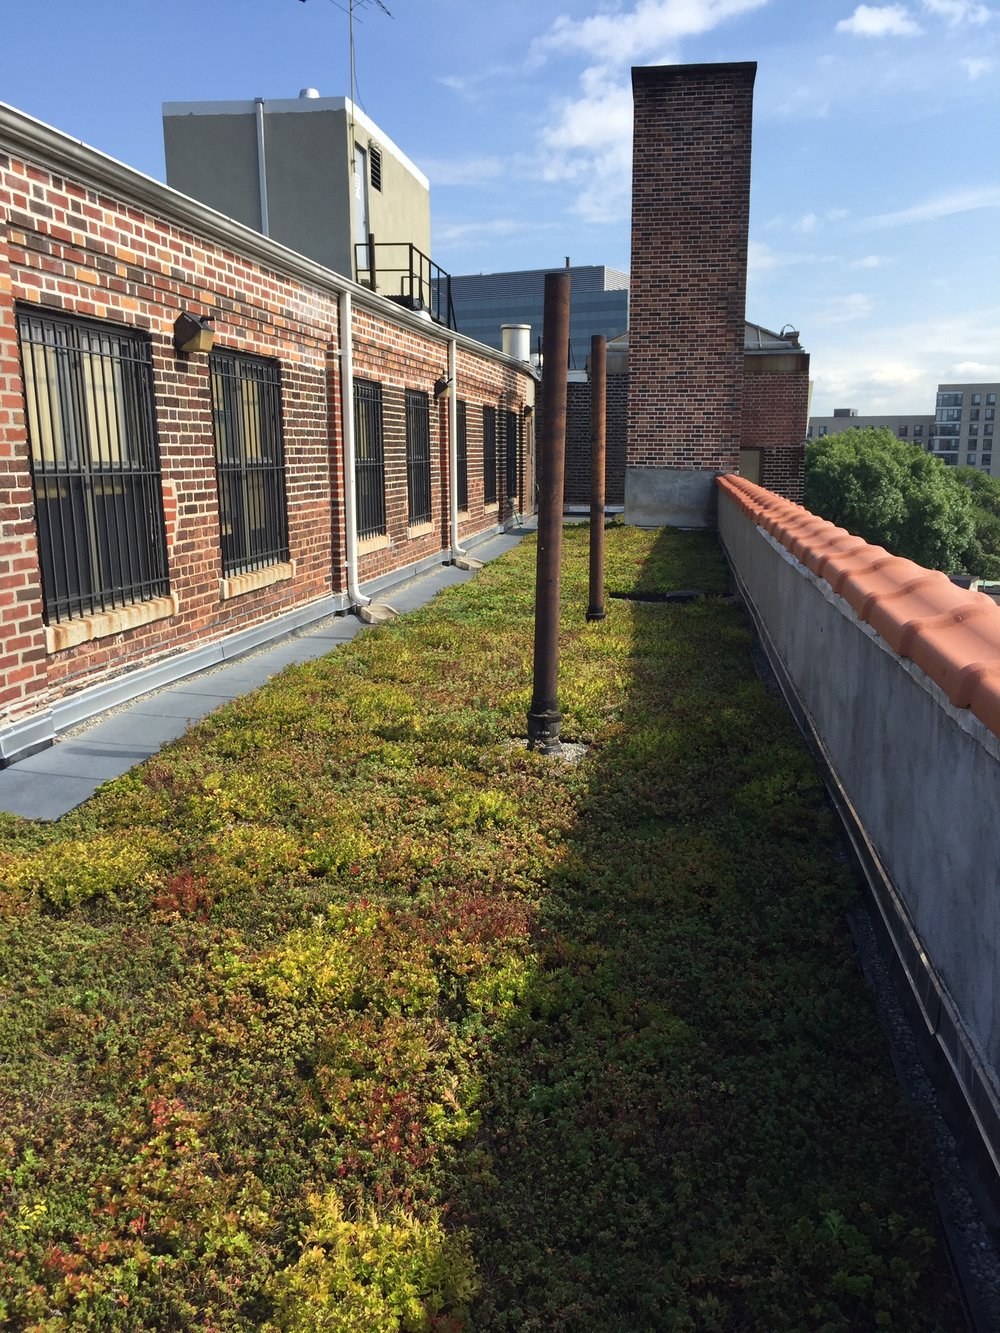 logan gardens nycswcd_green_roof_highview_creations_5.jpg